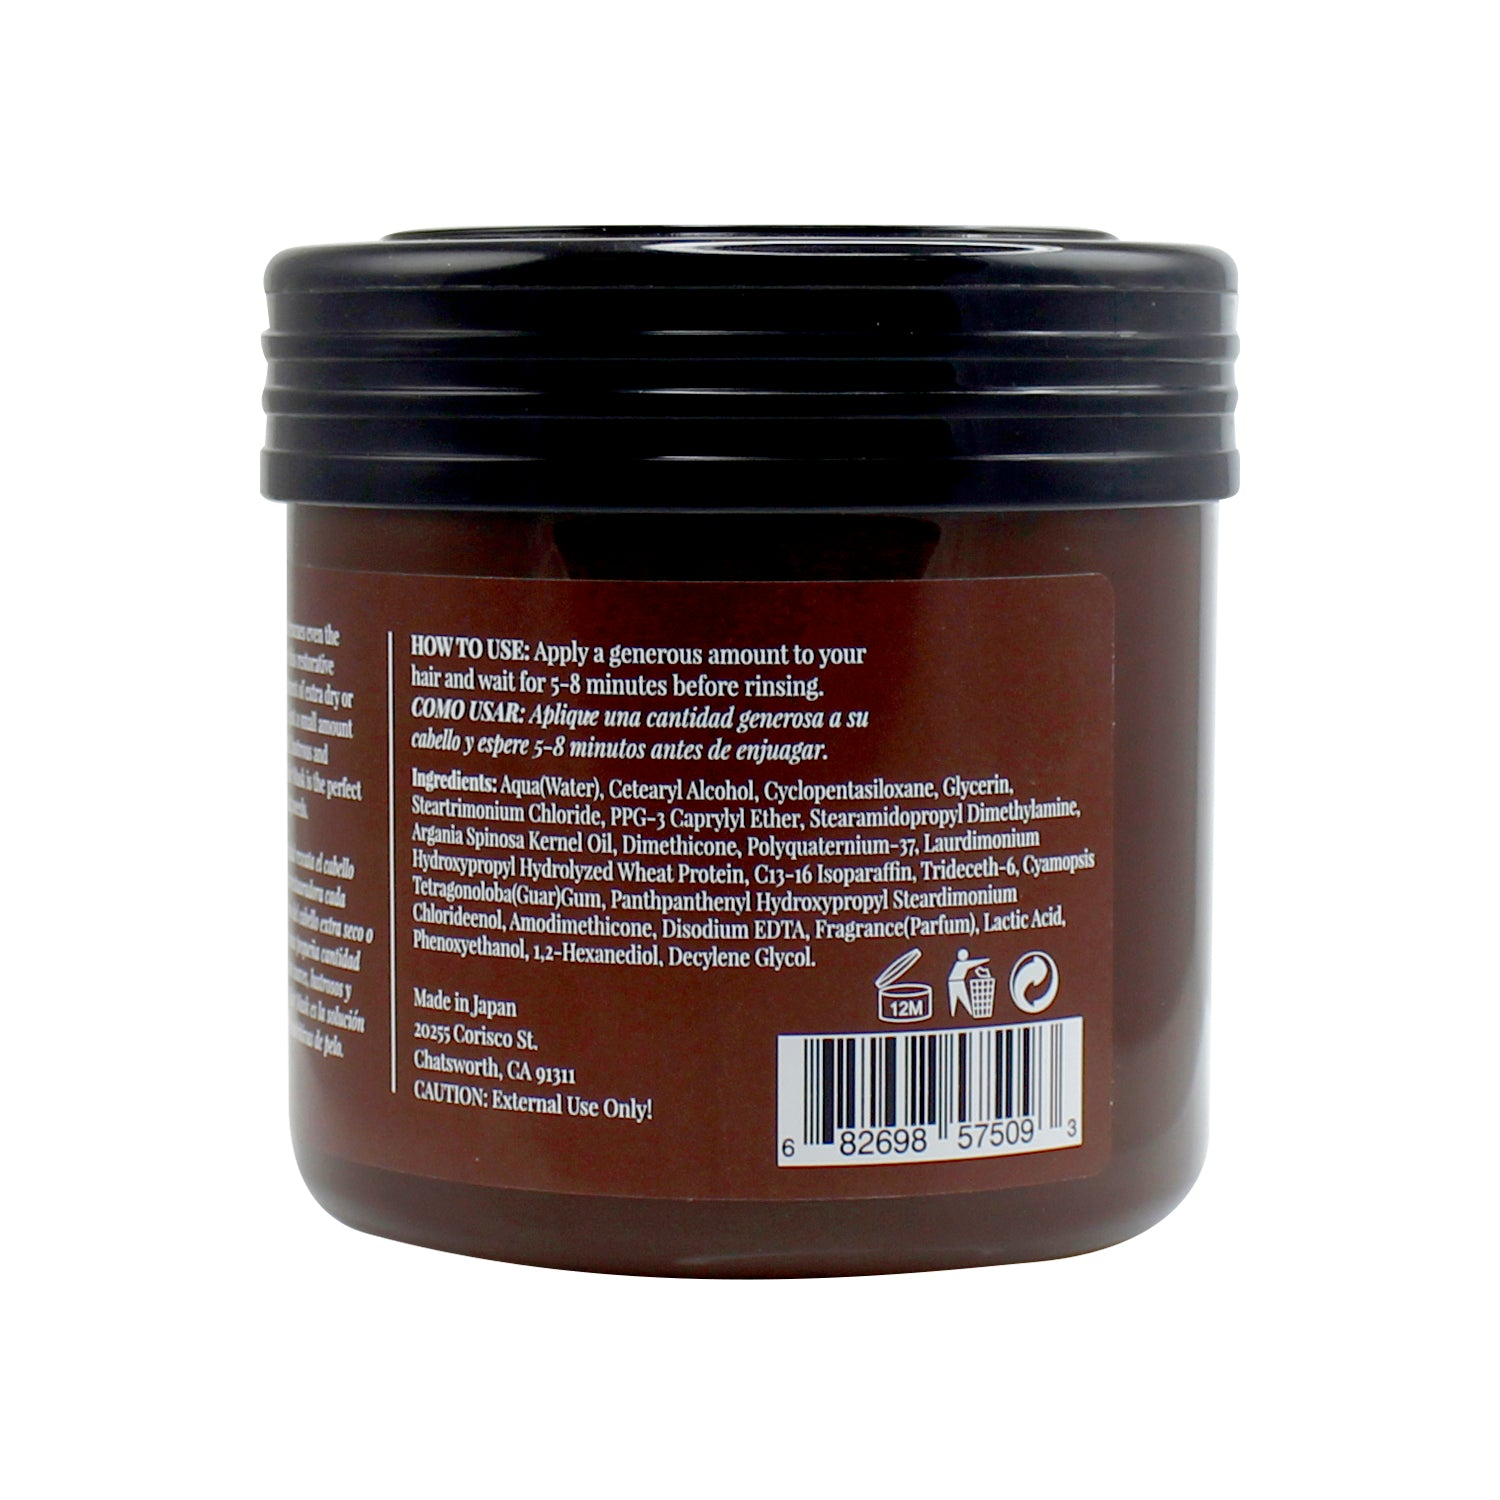 Vivo Per Lei Damaged Hair Conditioning Mask